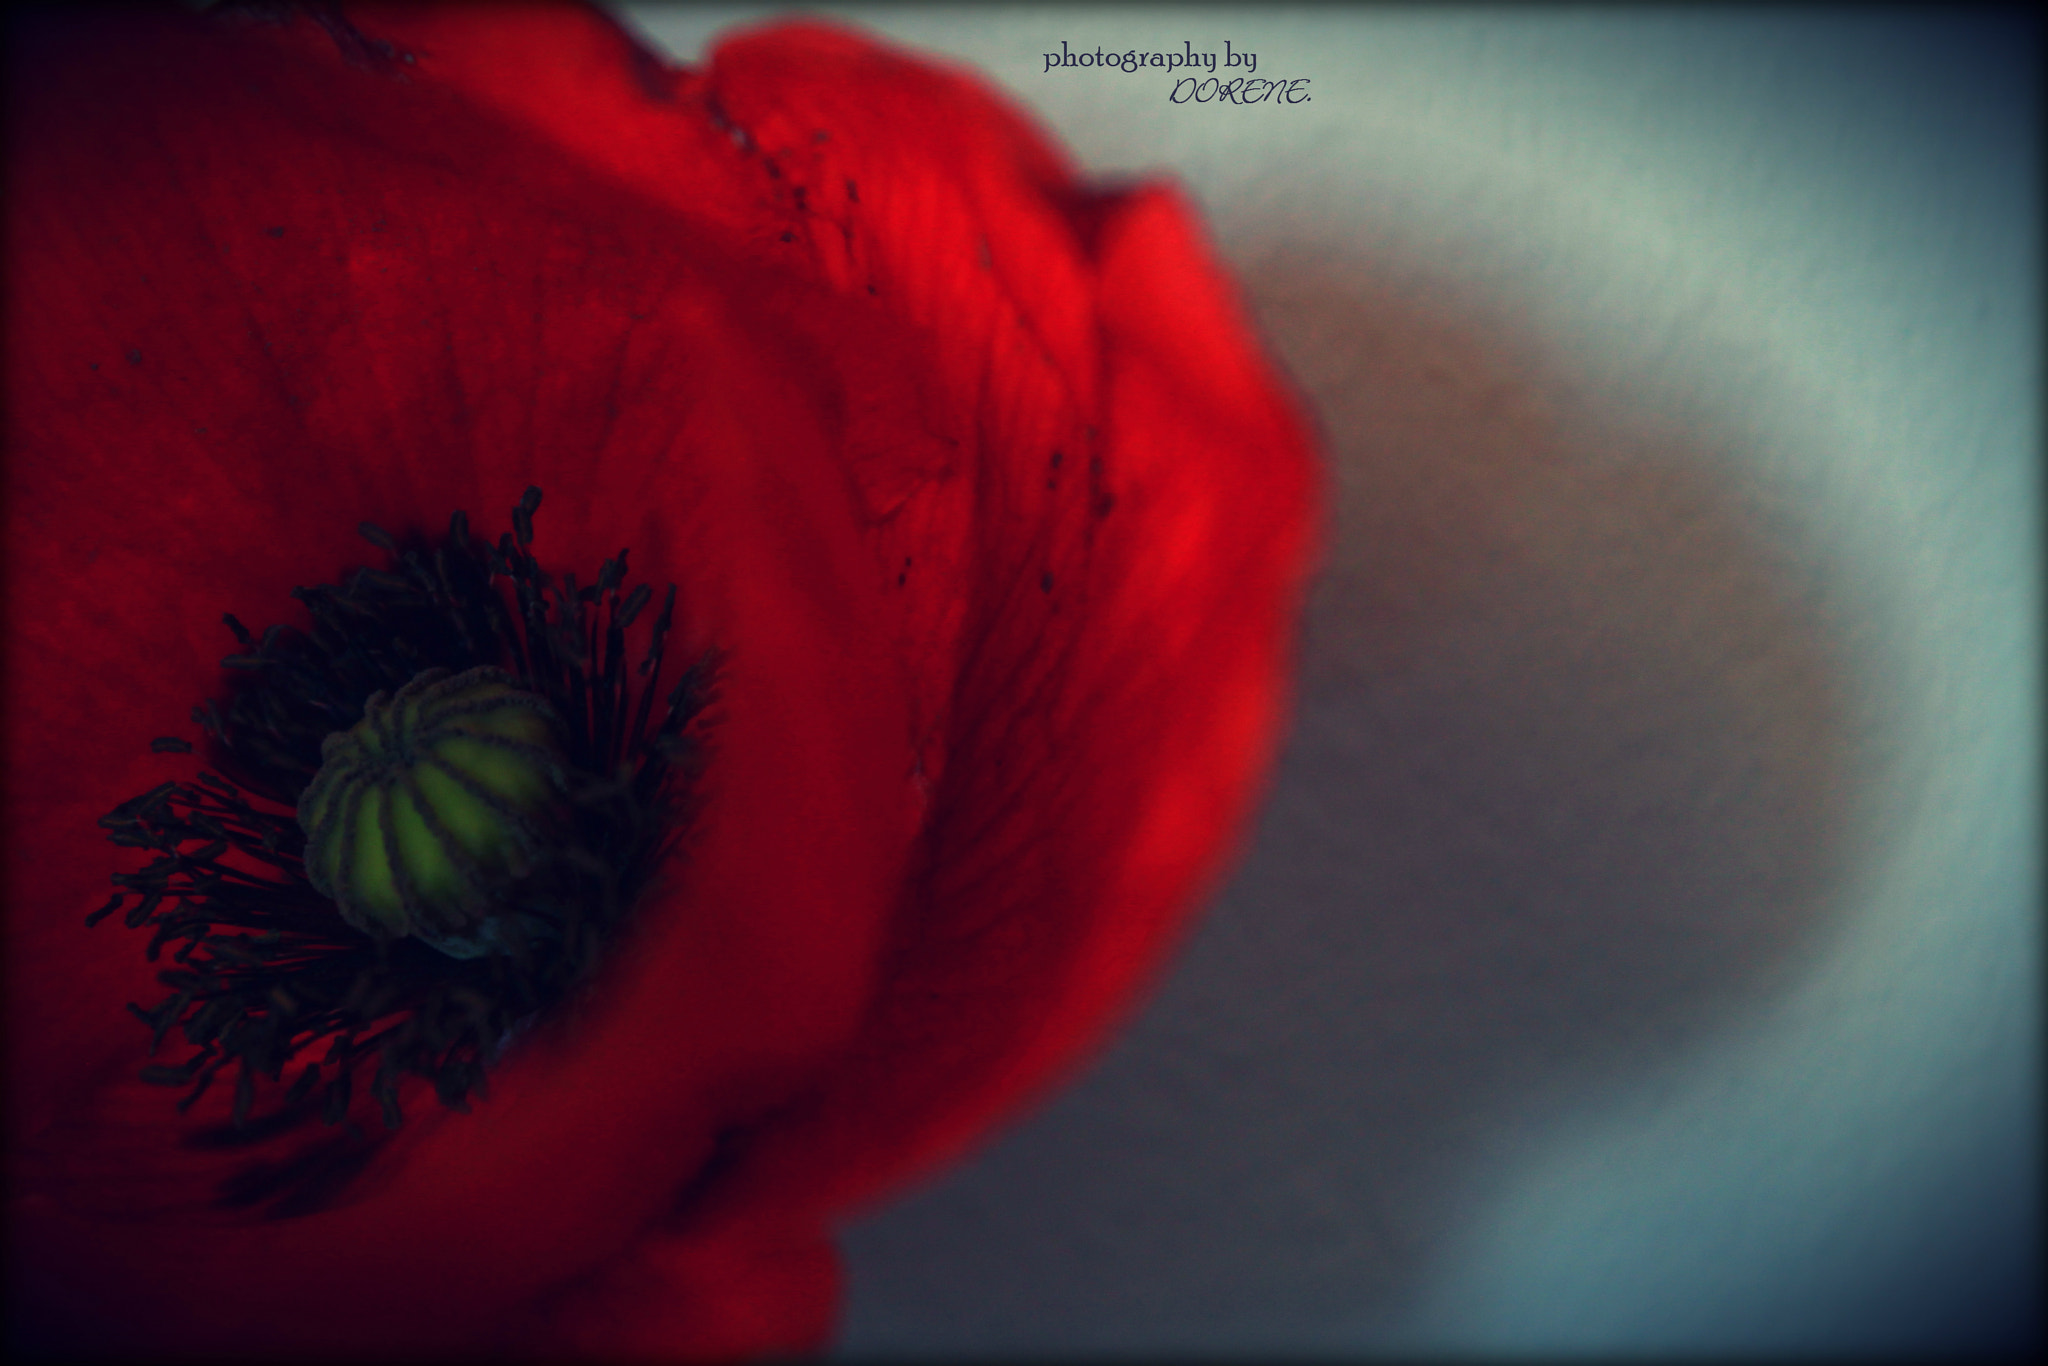 Photograph Coquelicot. by Photography by Dorene. on 500px